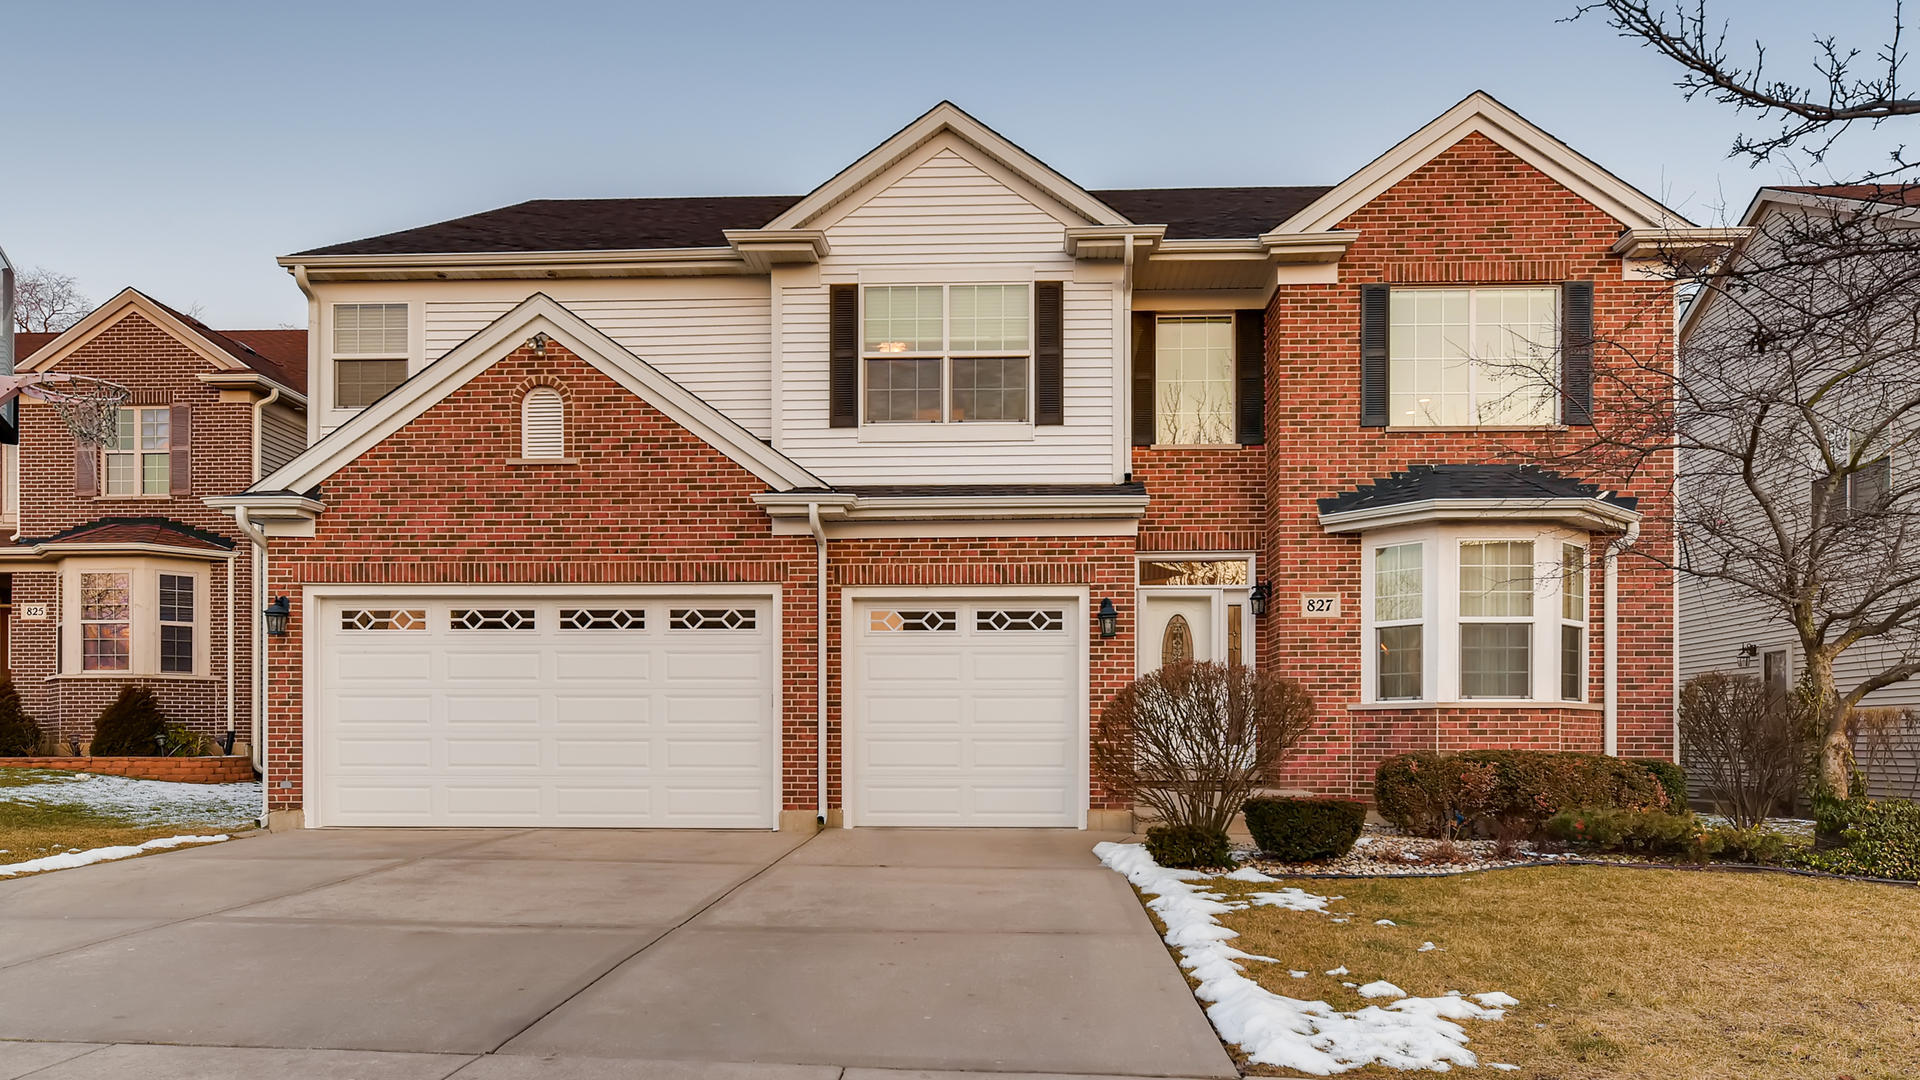 827 SARA Court, Elk Grove Village in Cook County, IL 60007 Home for Sale